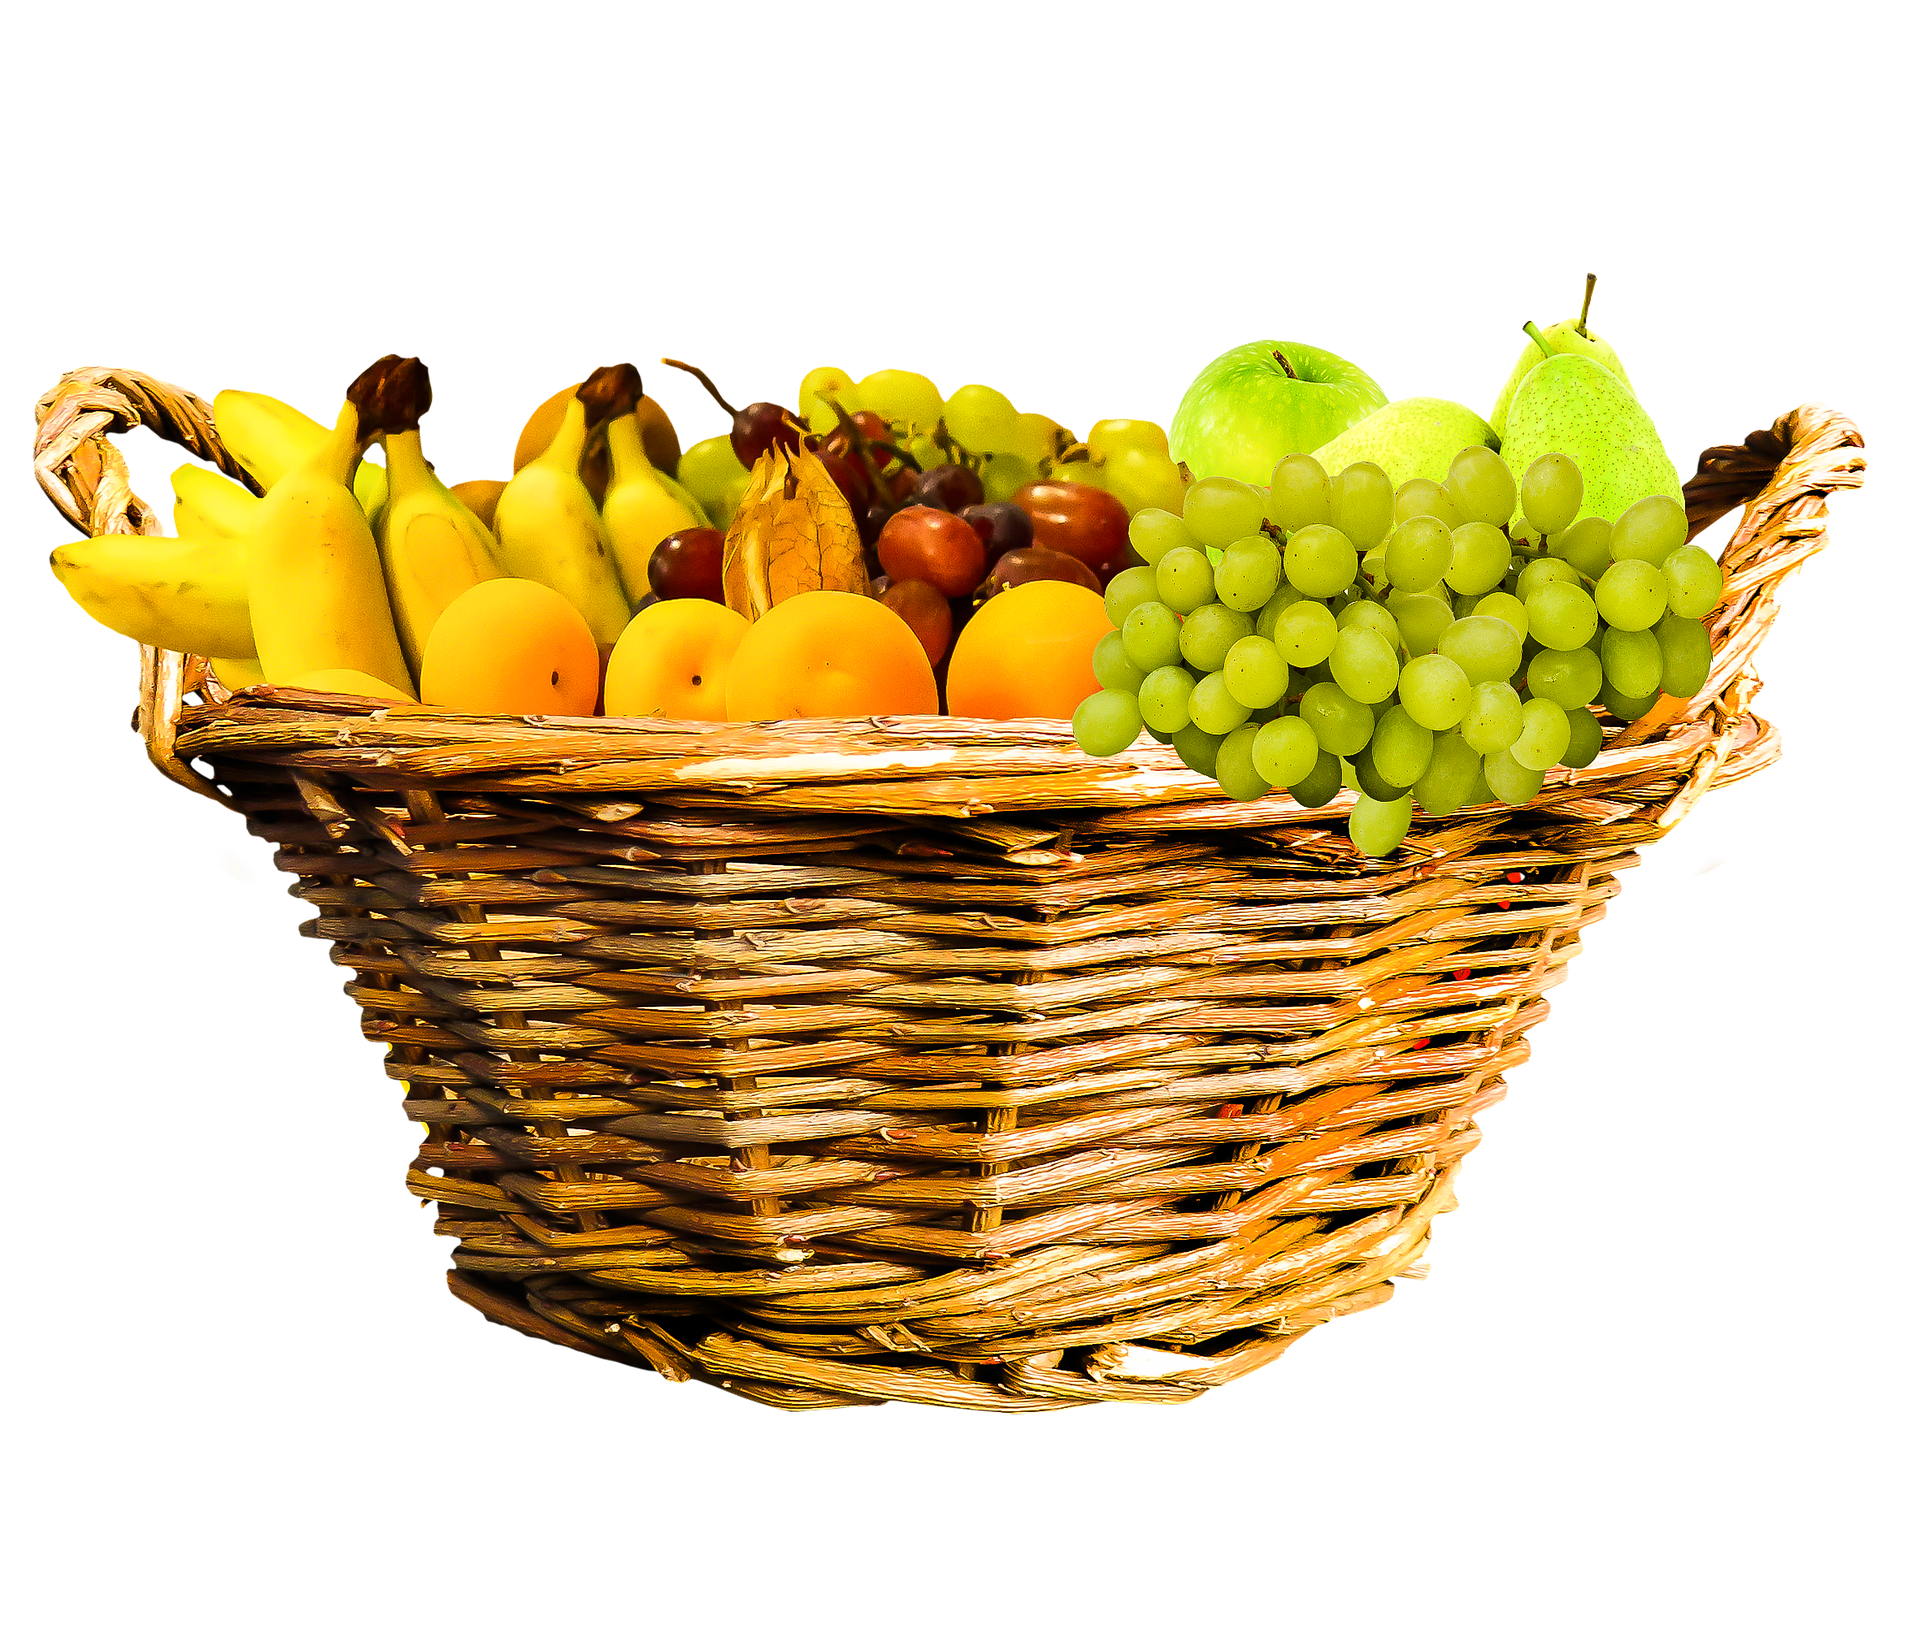 While fruit can be a good option, an entire basket of fruit may not be.